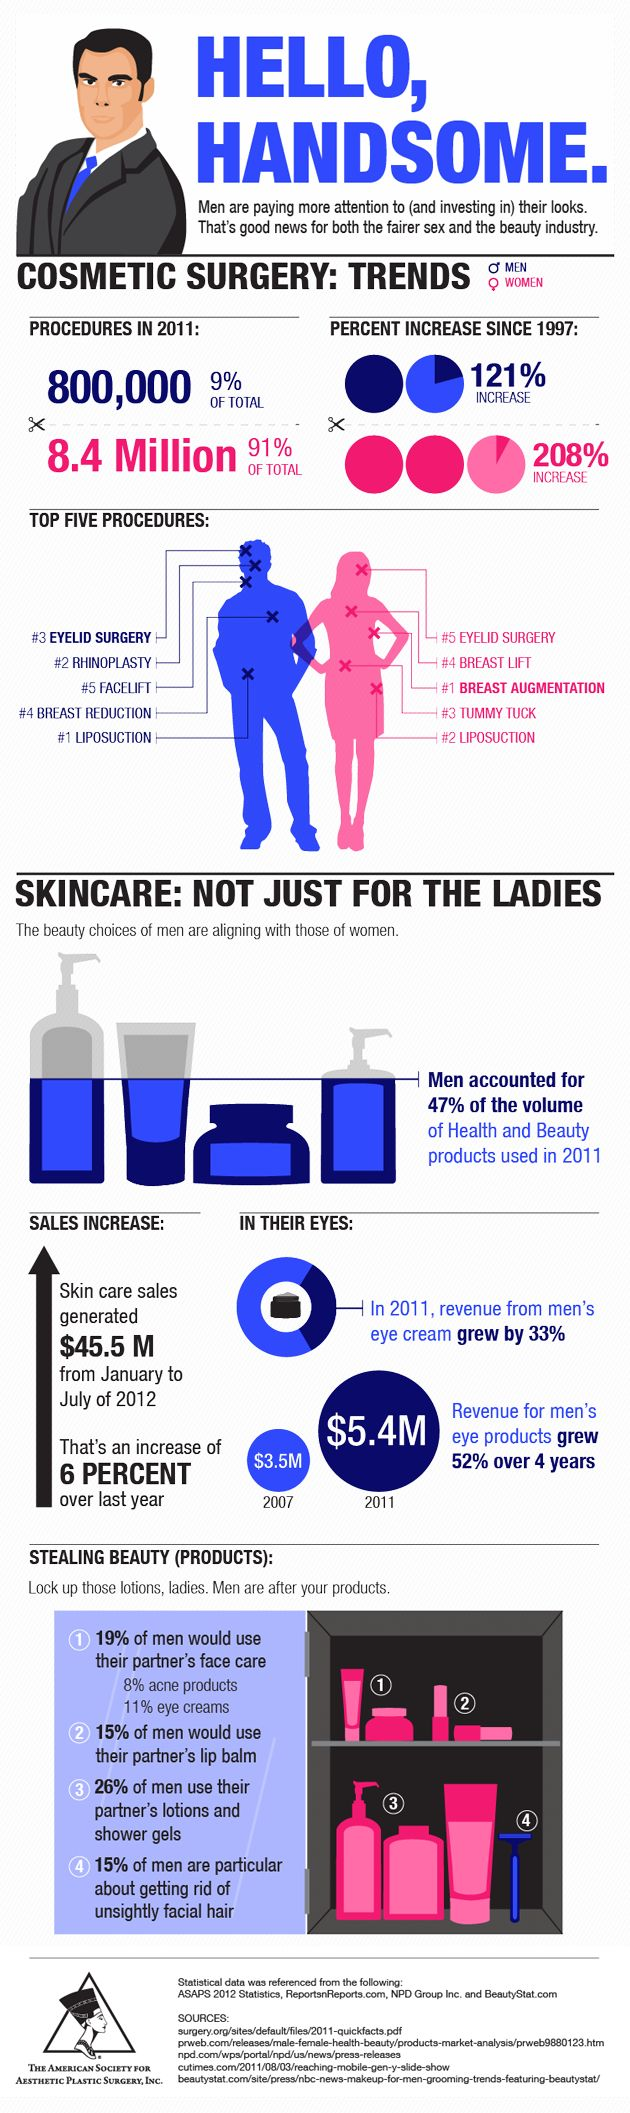 Hello, handsome: Male plastic surgery and skincare trends [ #INFOGRAPHIC ] #plasticsurgery #skincare